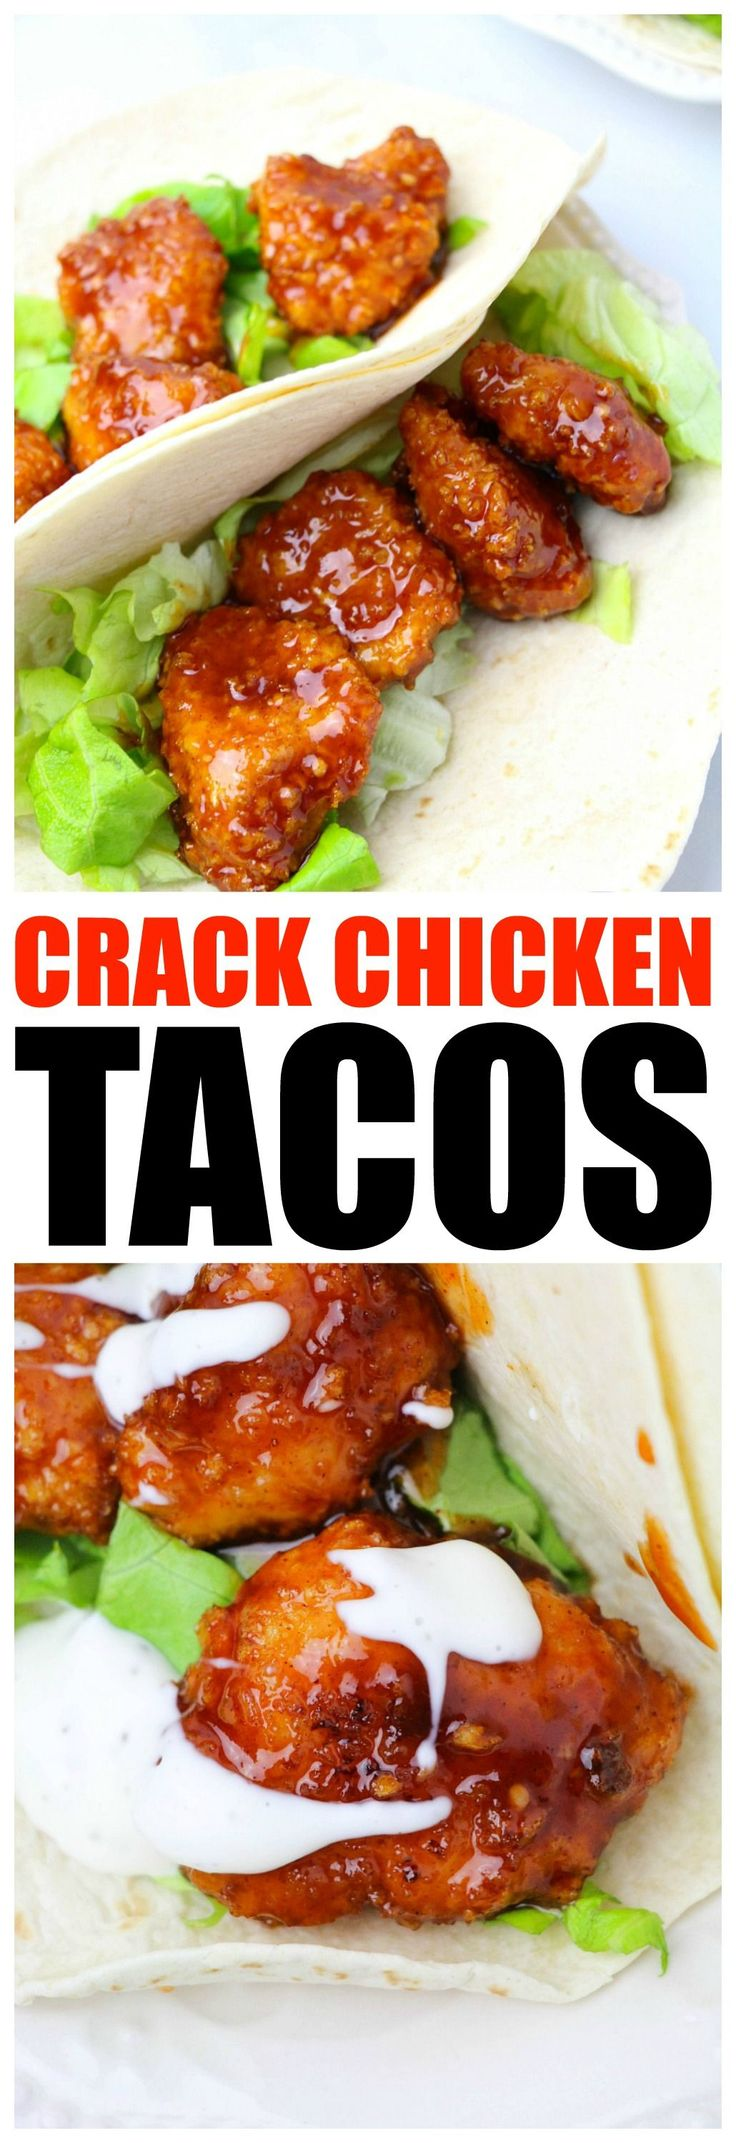 Best 25 chicken taco recipes ideas on pinterest healthy chicken crack chicken tacos addicting chicken taco recipe with perfect spice for a crack a lacking dinnertaco chicken wraps forumfinder Choice Image